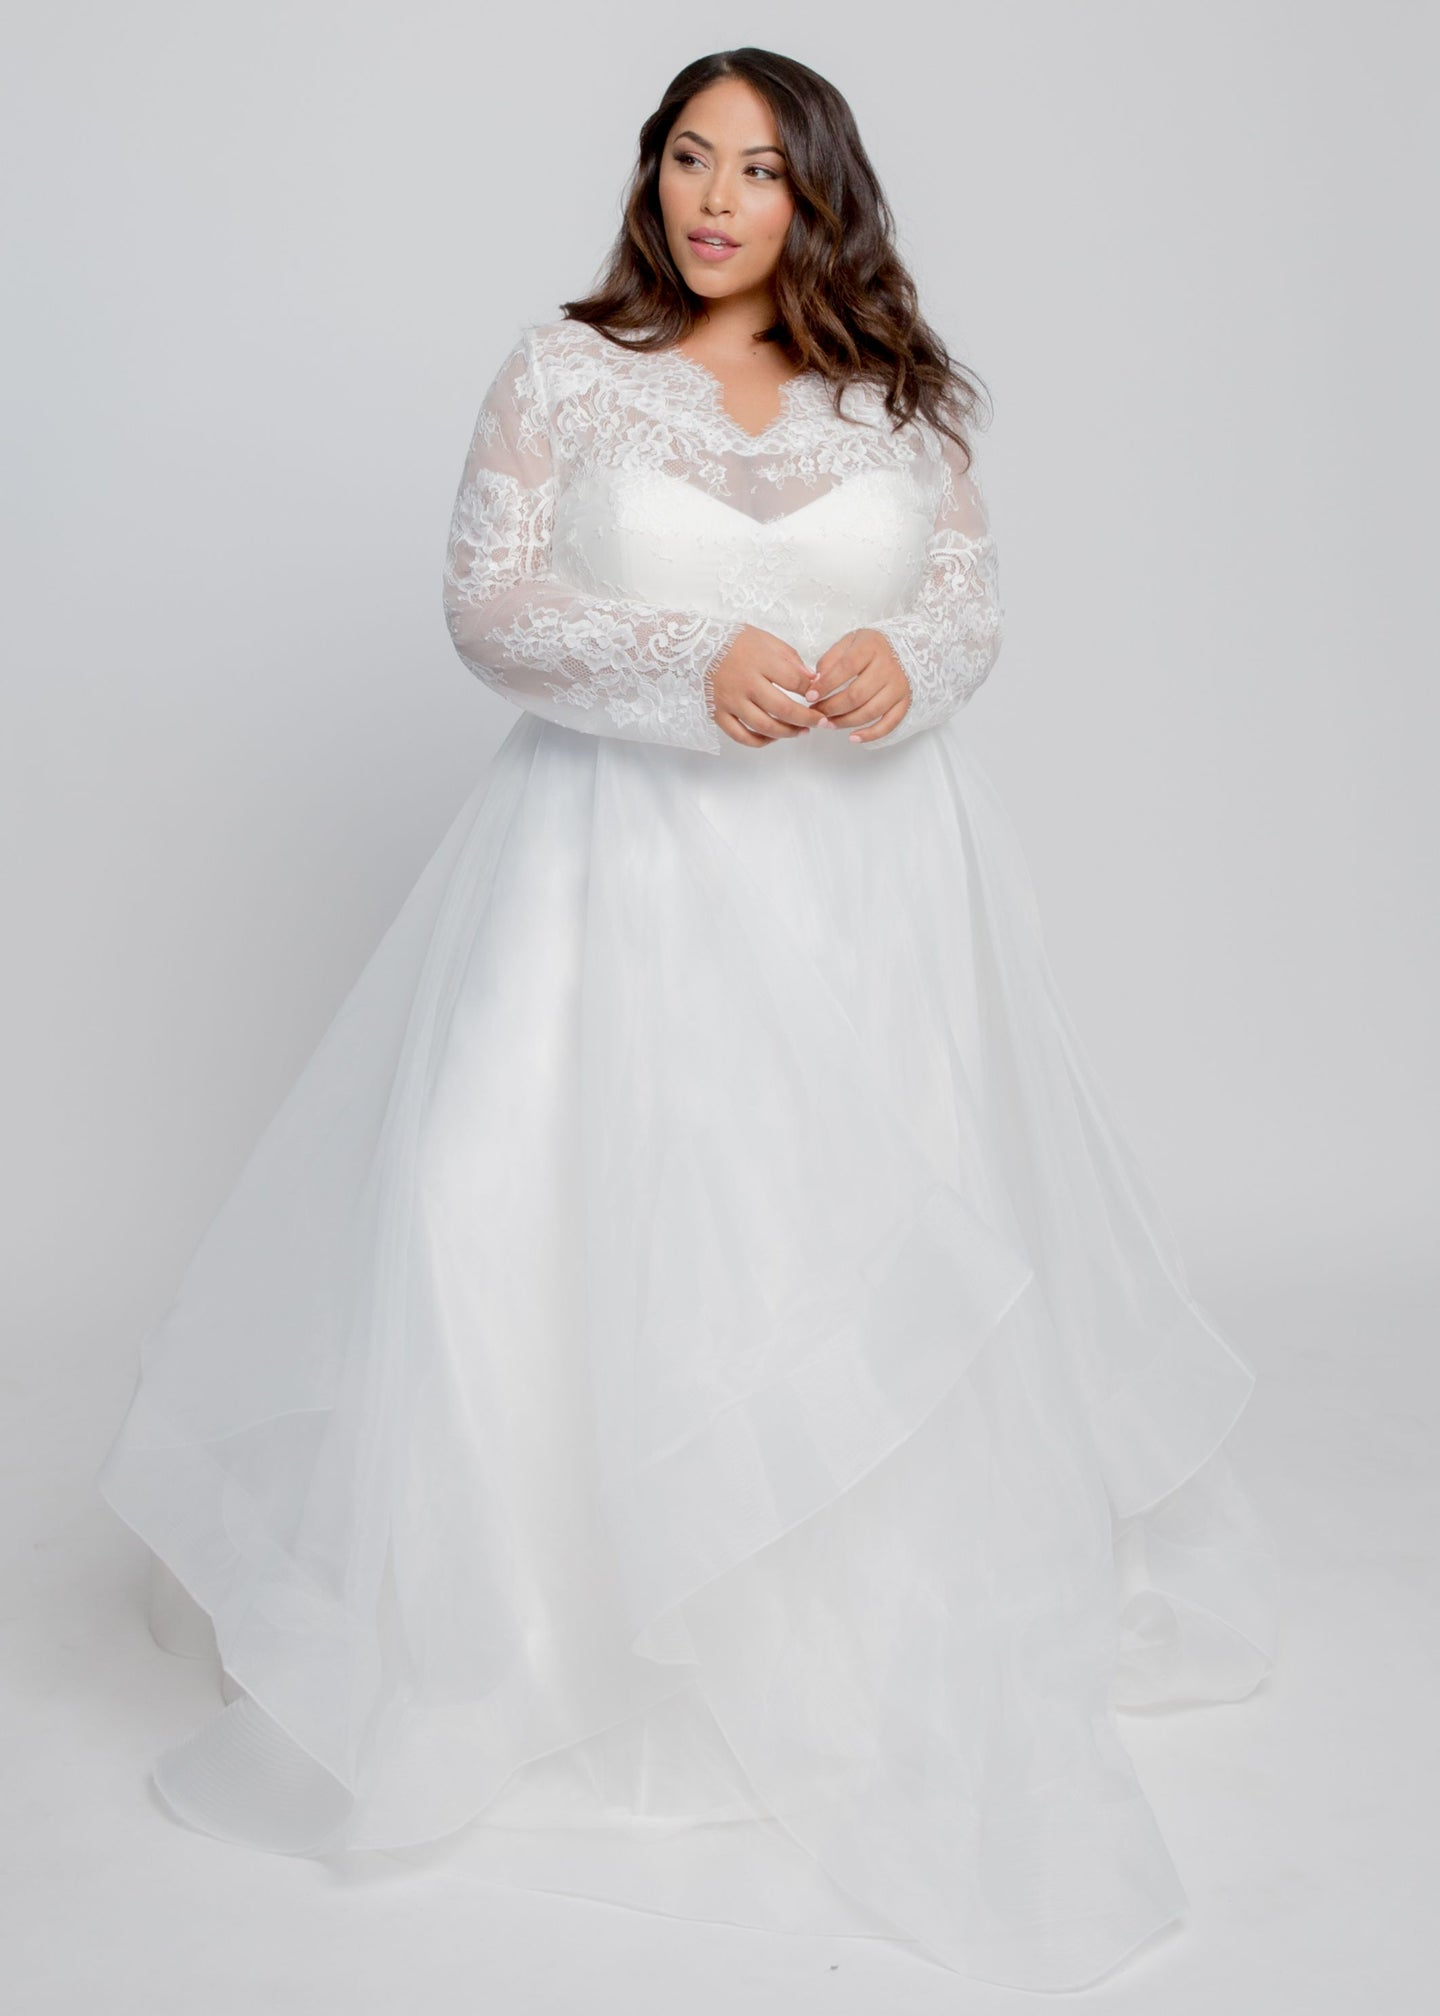 Gorgeous bridal gowns for all body shapes: plus size, curvy, or petite brides. Try on our wedding dresses at home. Size 0-30. Comfortable. Convenient. Fun. Lace or satin. Mermaid or A-line. The layers create a pretty illusion and give you the option to have sleeves or go strapless. The ivory lace topper features a detailed v neck and custom fitted long sleeves. Horsehair on the hem gives the skirt dramatic flair and accentuates your waist.